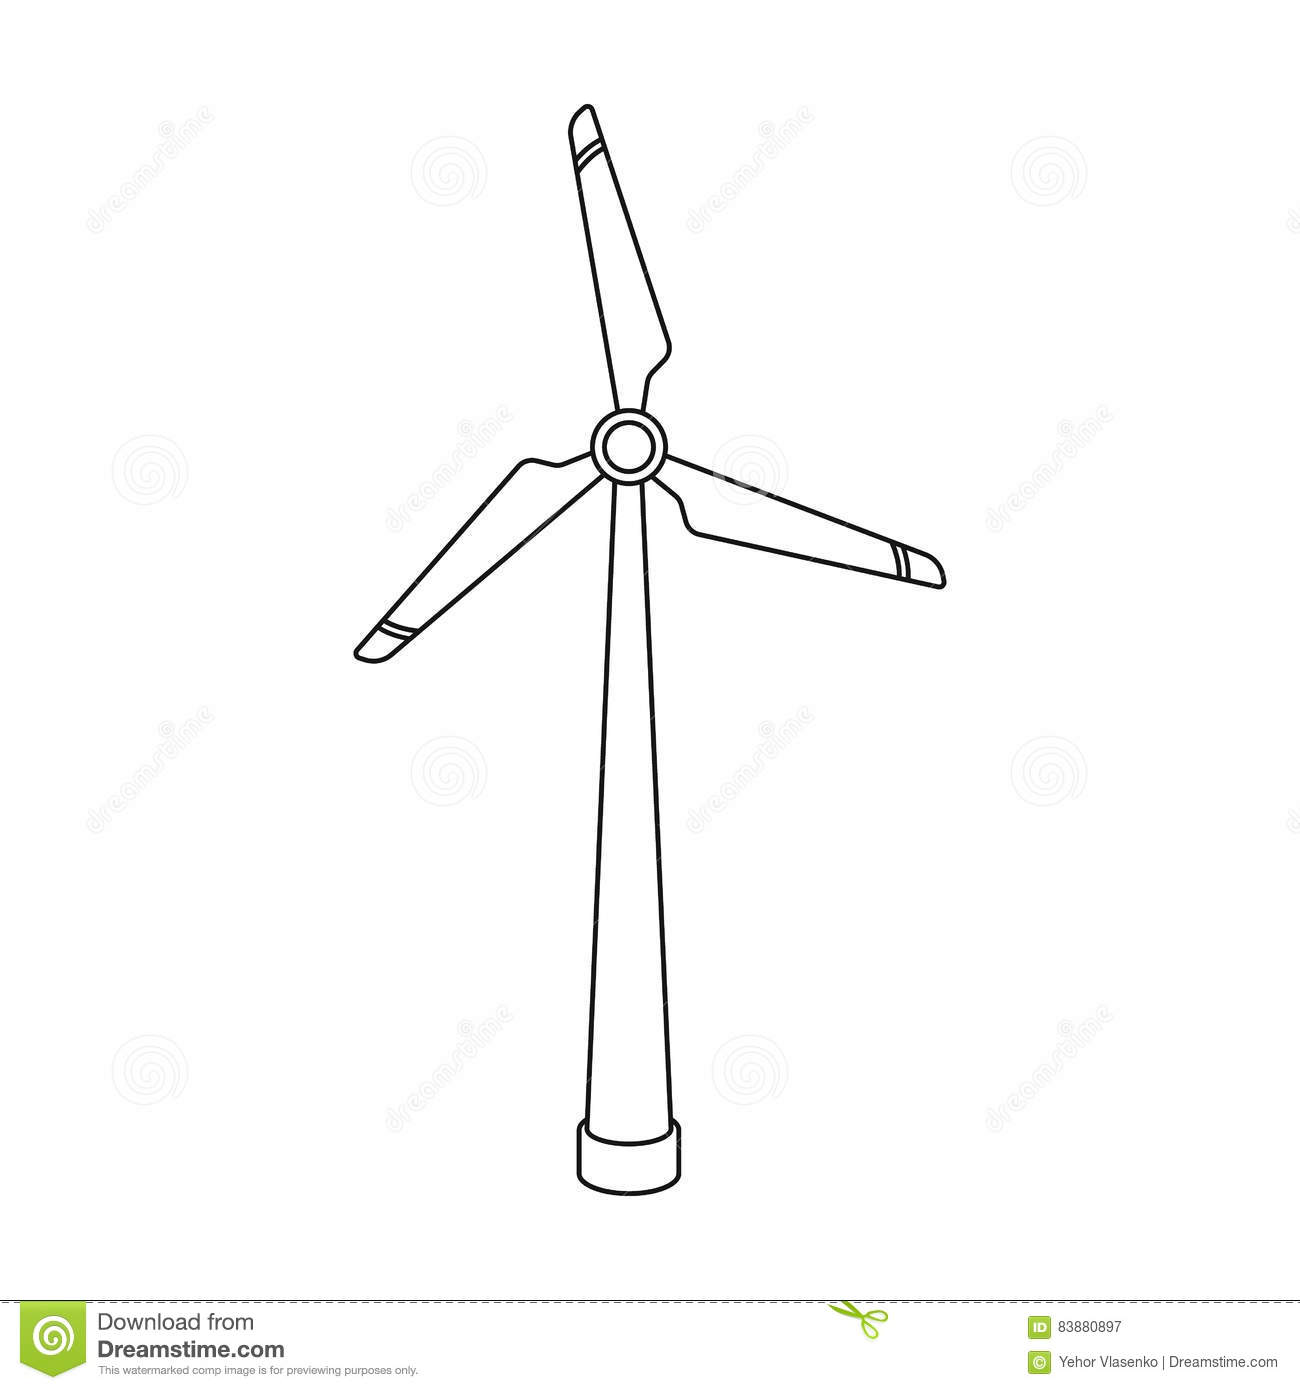 wind energy turbine icon in outline style isolated on